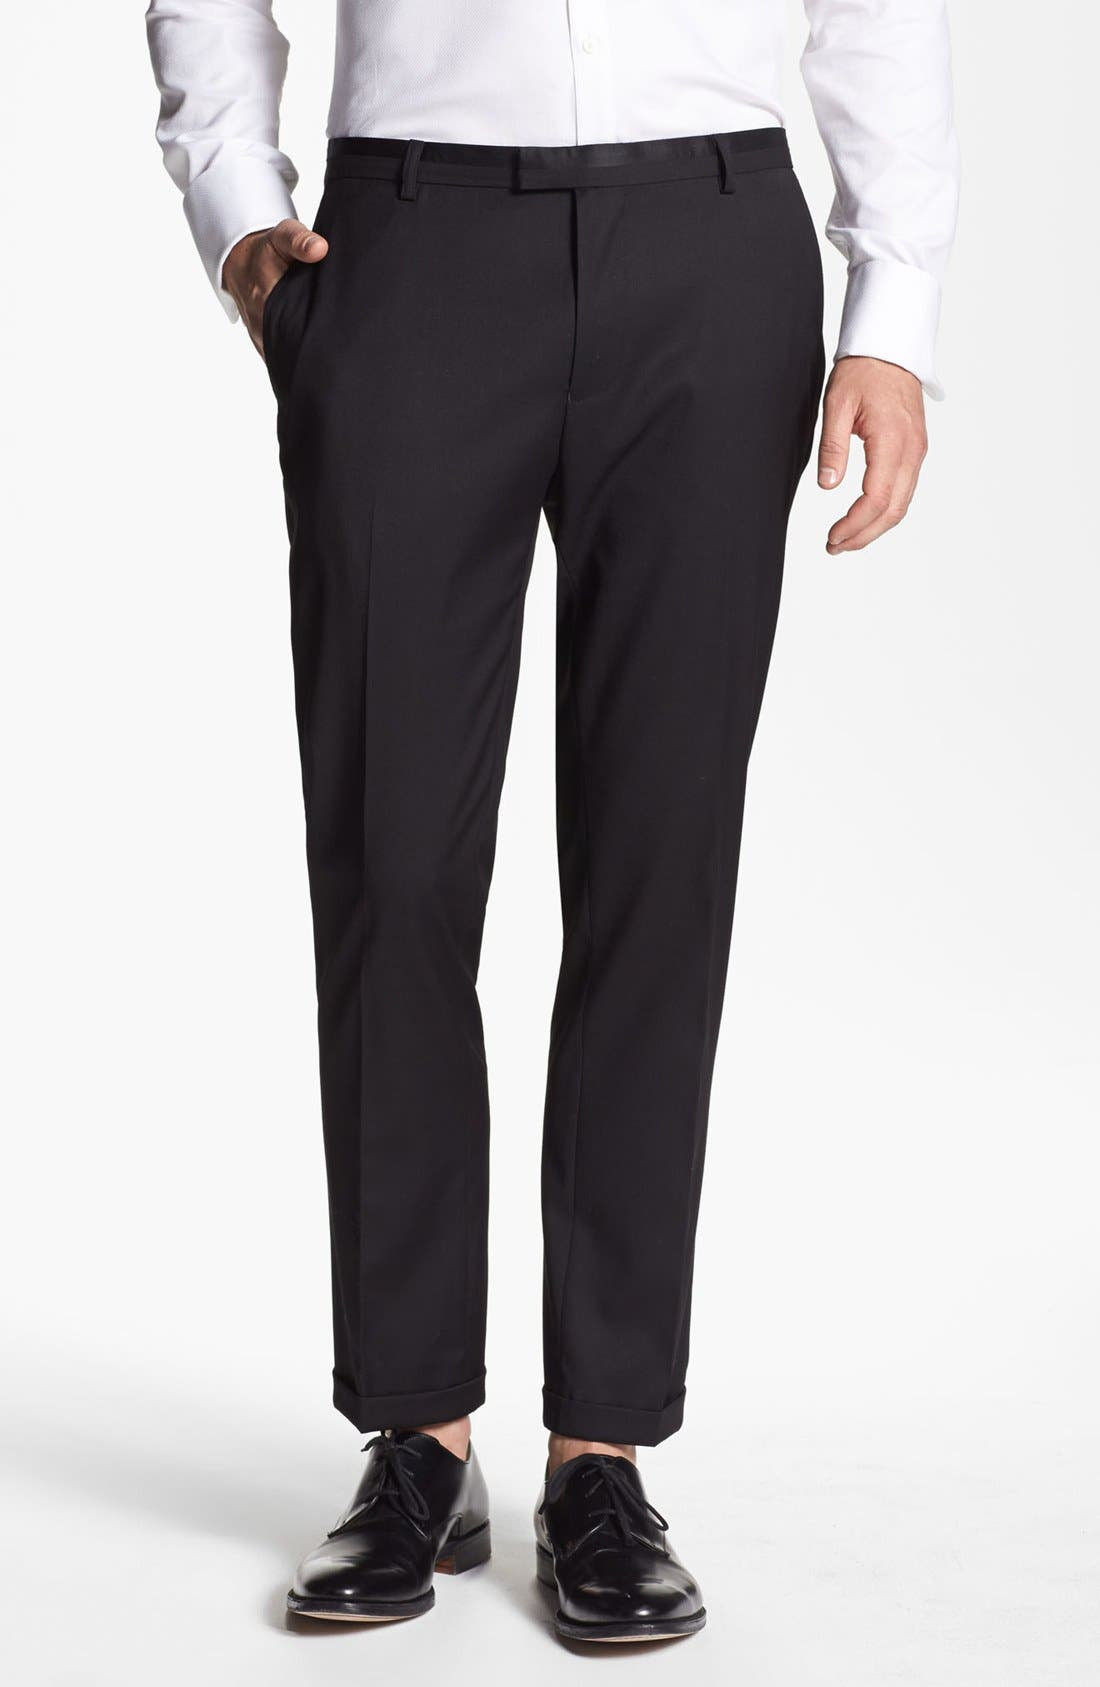 TOPMAN Skinny Fit Tuxedo Trousers, Main, color, 001